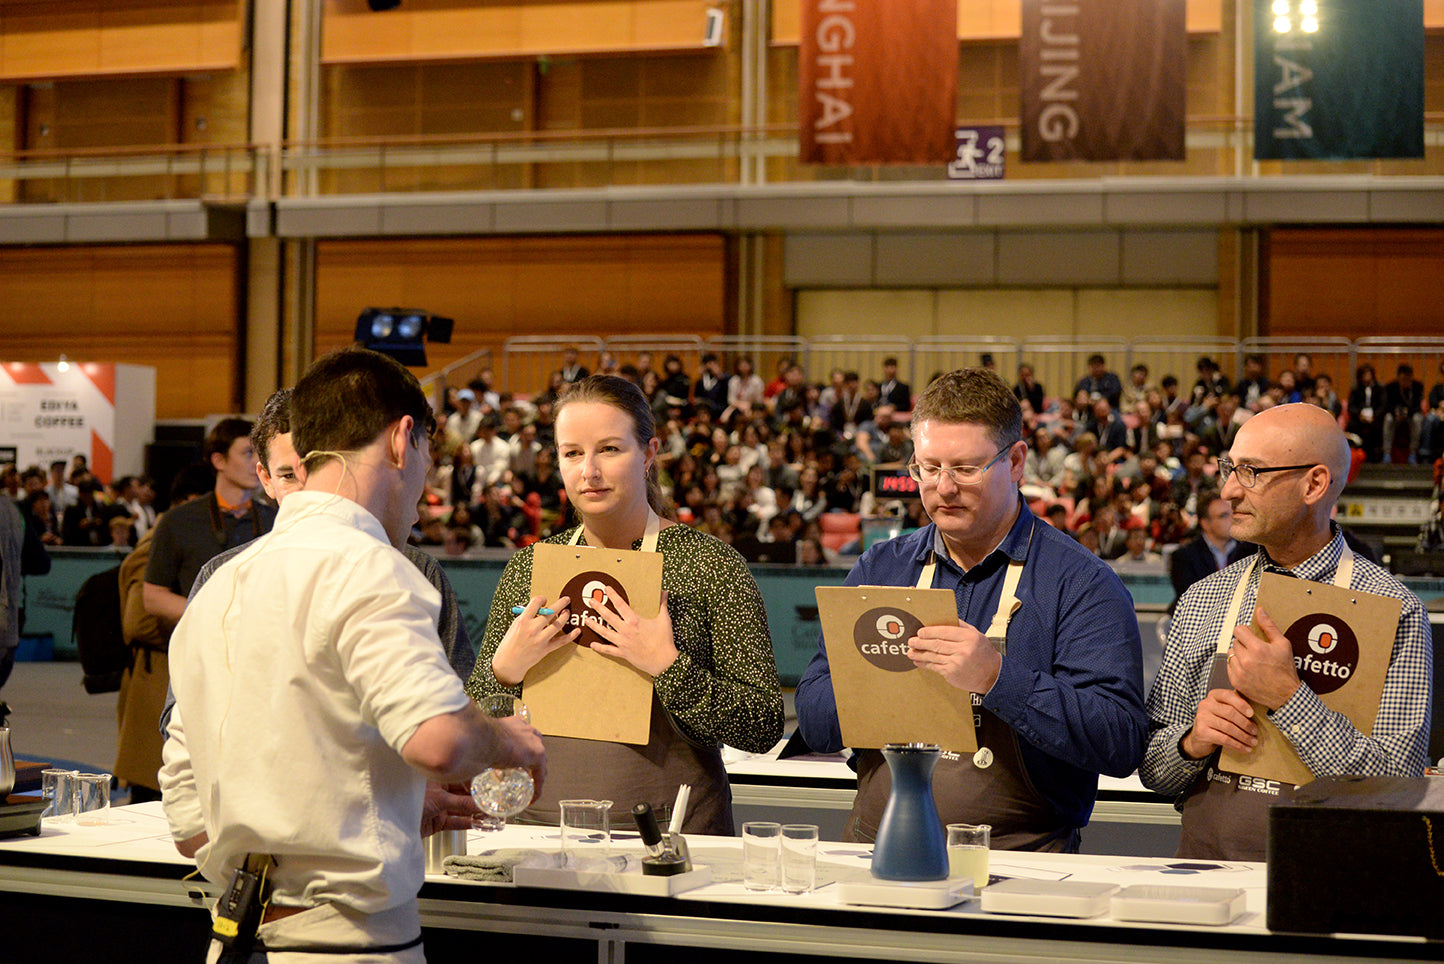 World Barista Championship Loveramics 2017